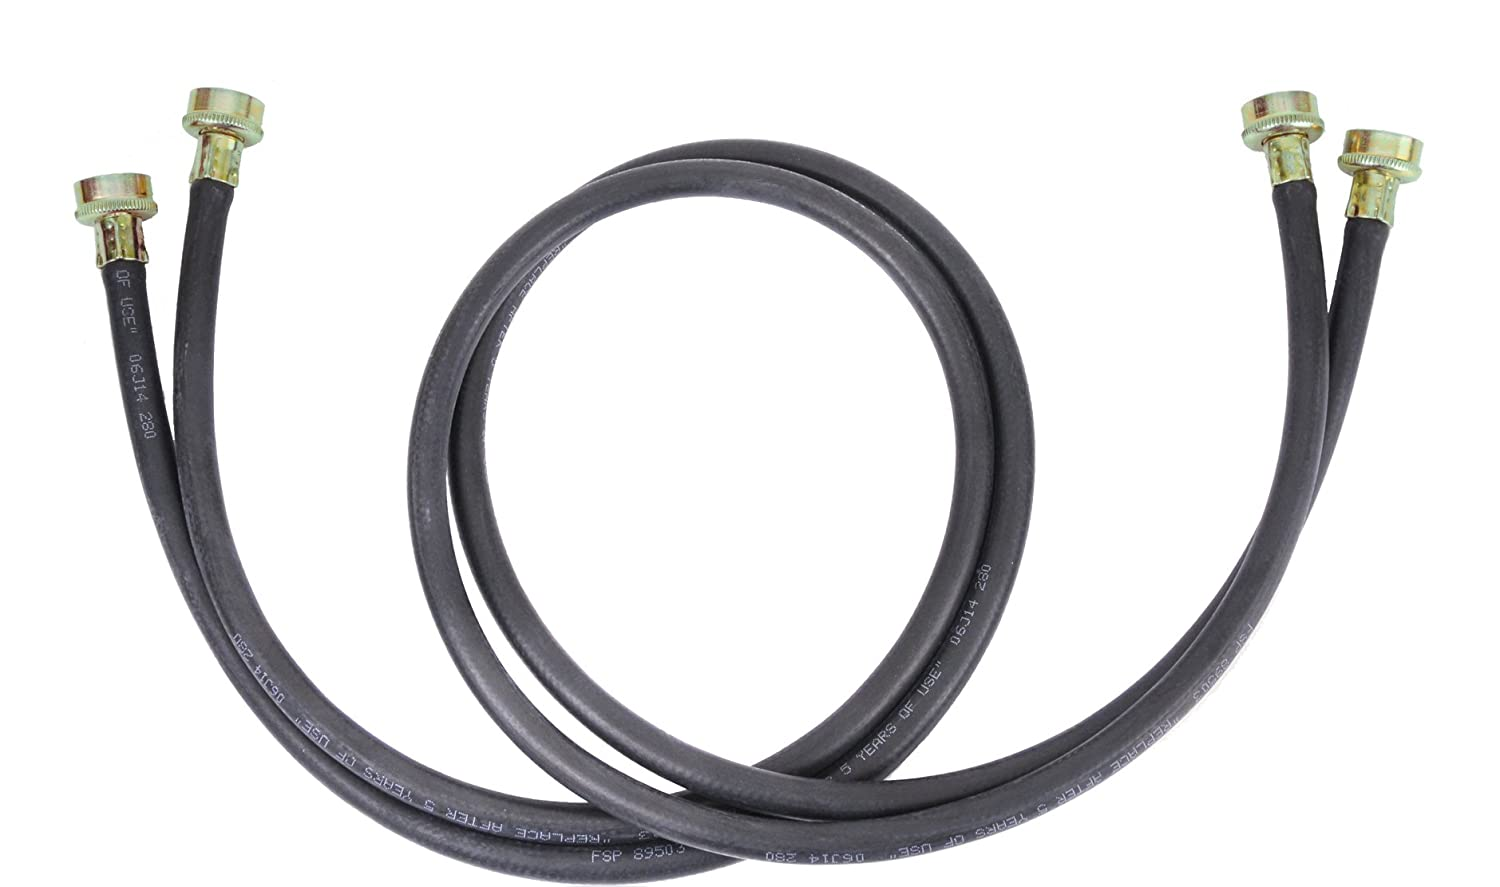 whirlpool 8212656rp 10 feet black rubber washer inlet hose 2 pack new fre. Black Bedroom Furniture Sets. Home Design Ideas